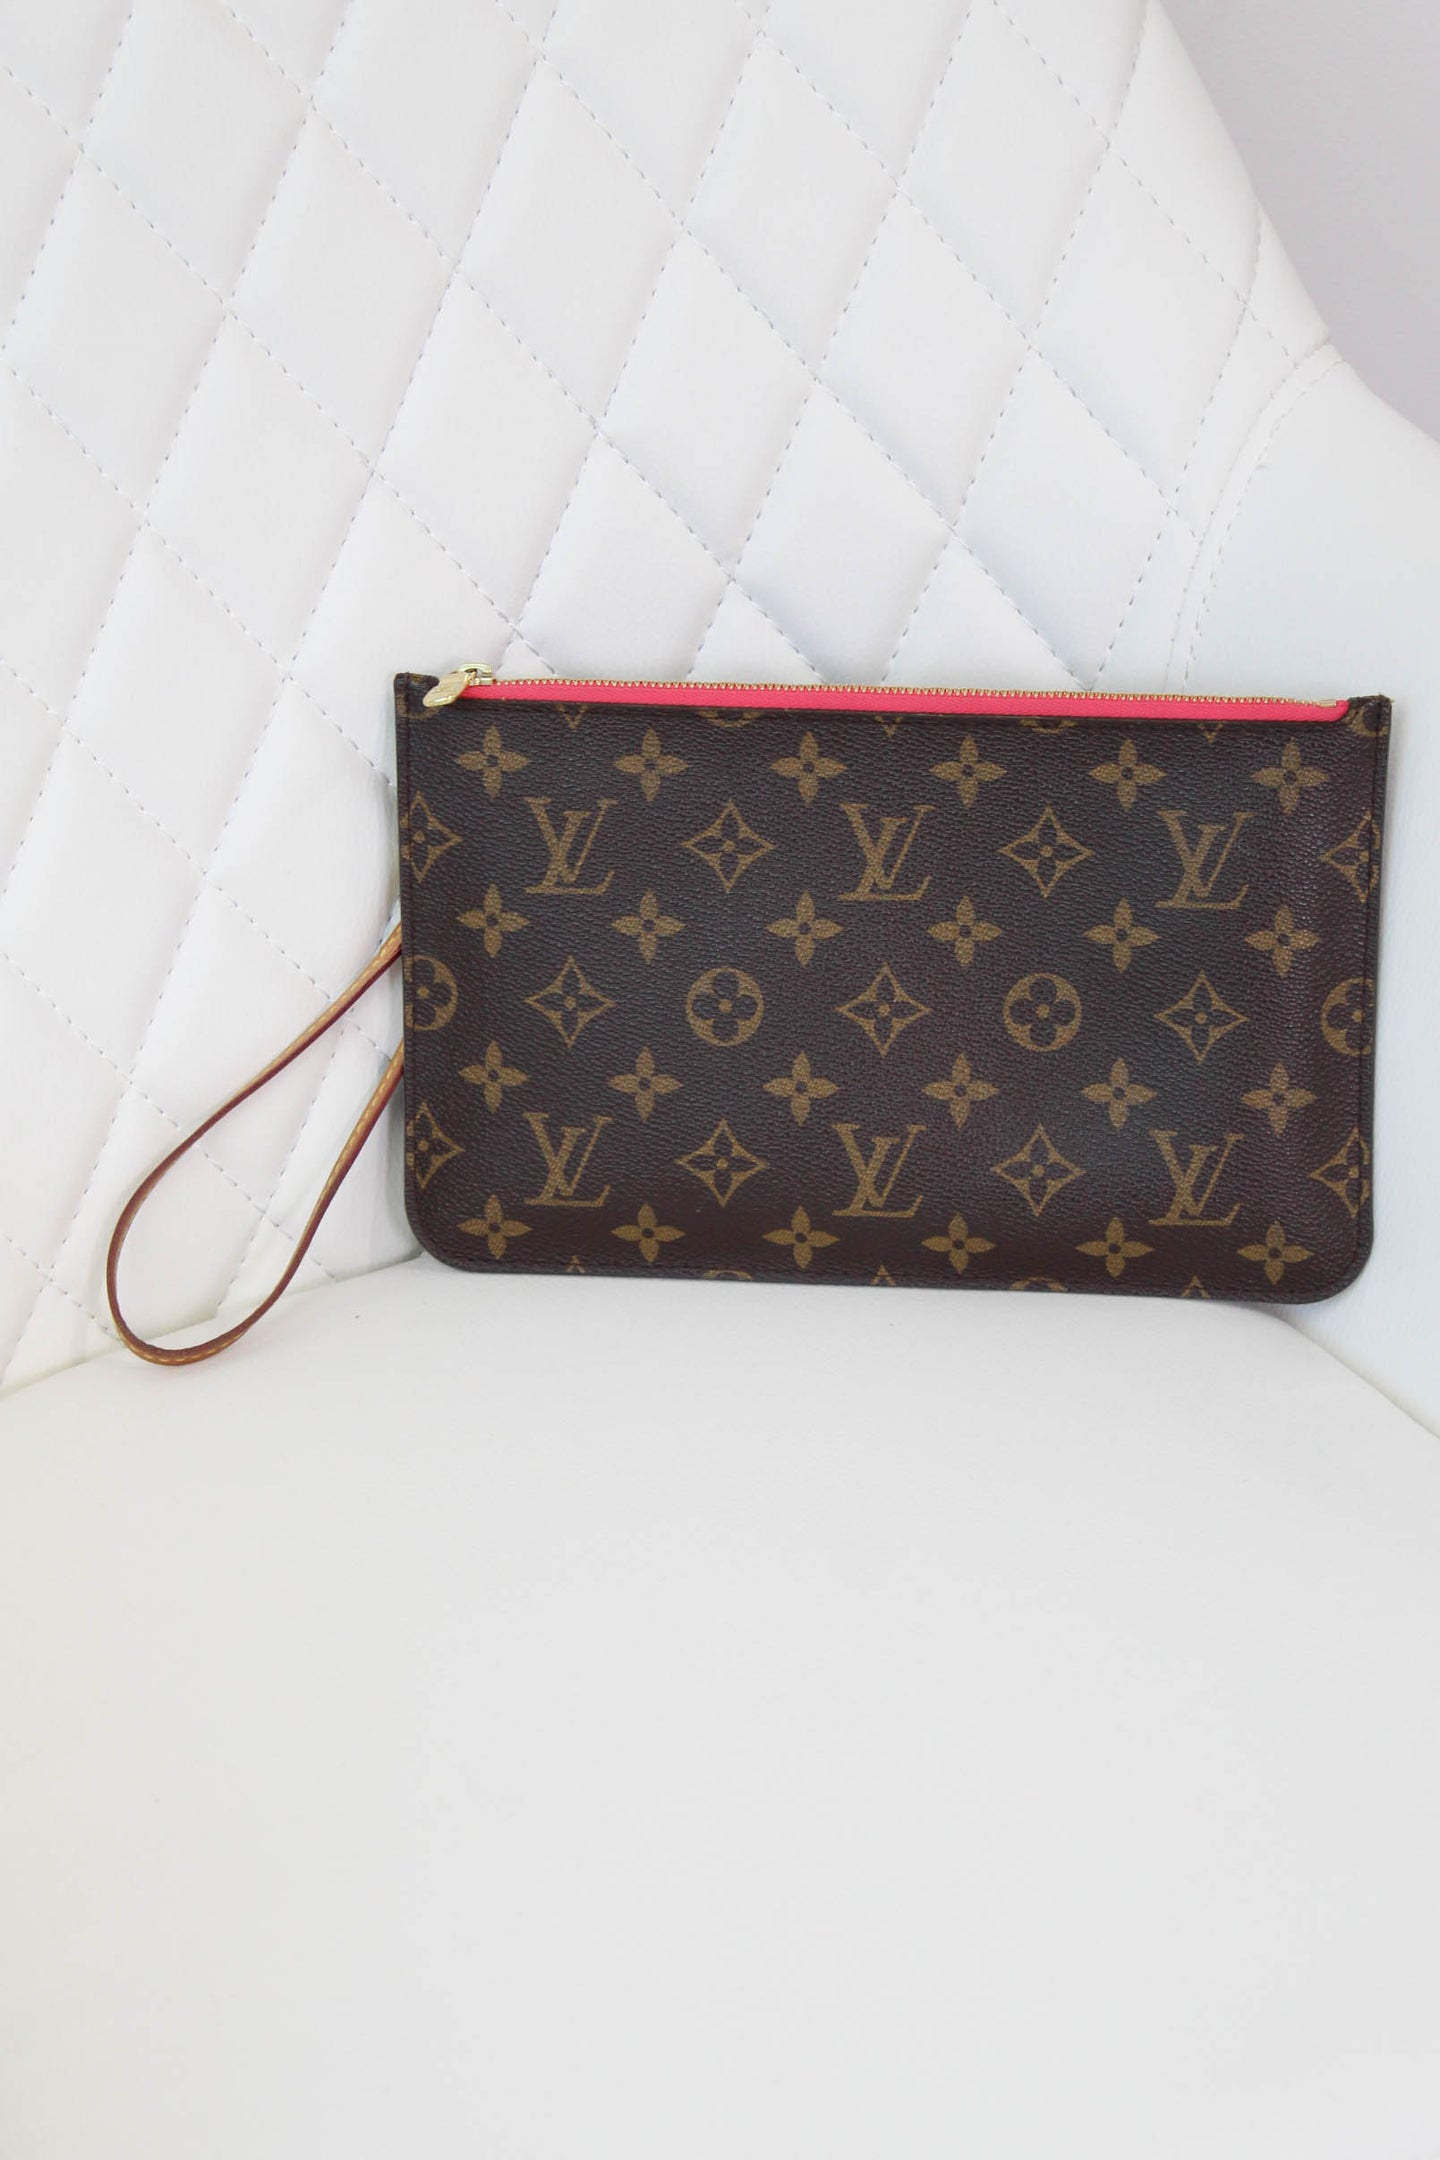 Neverfull GM Monogram Pouch